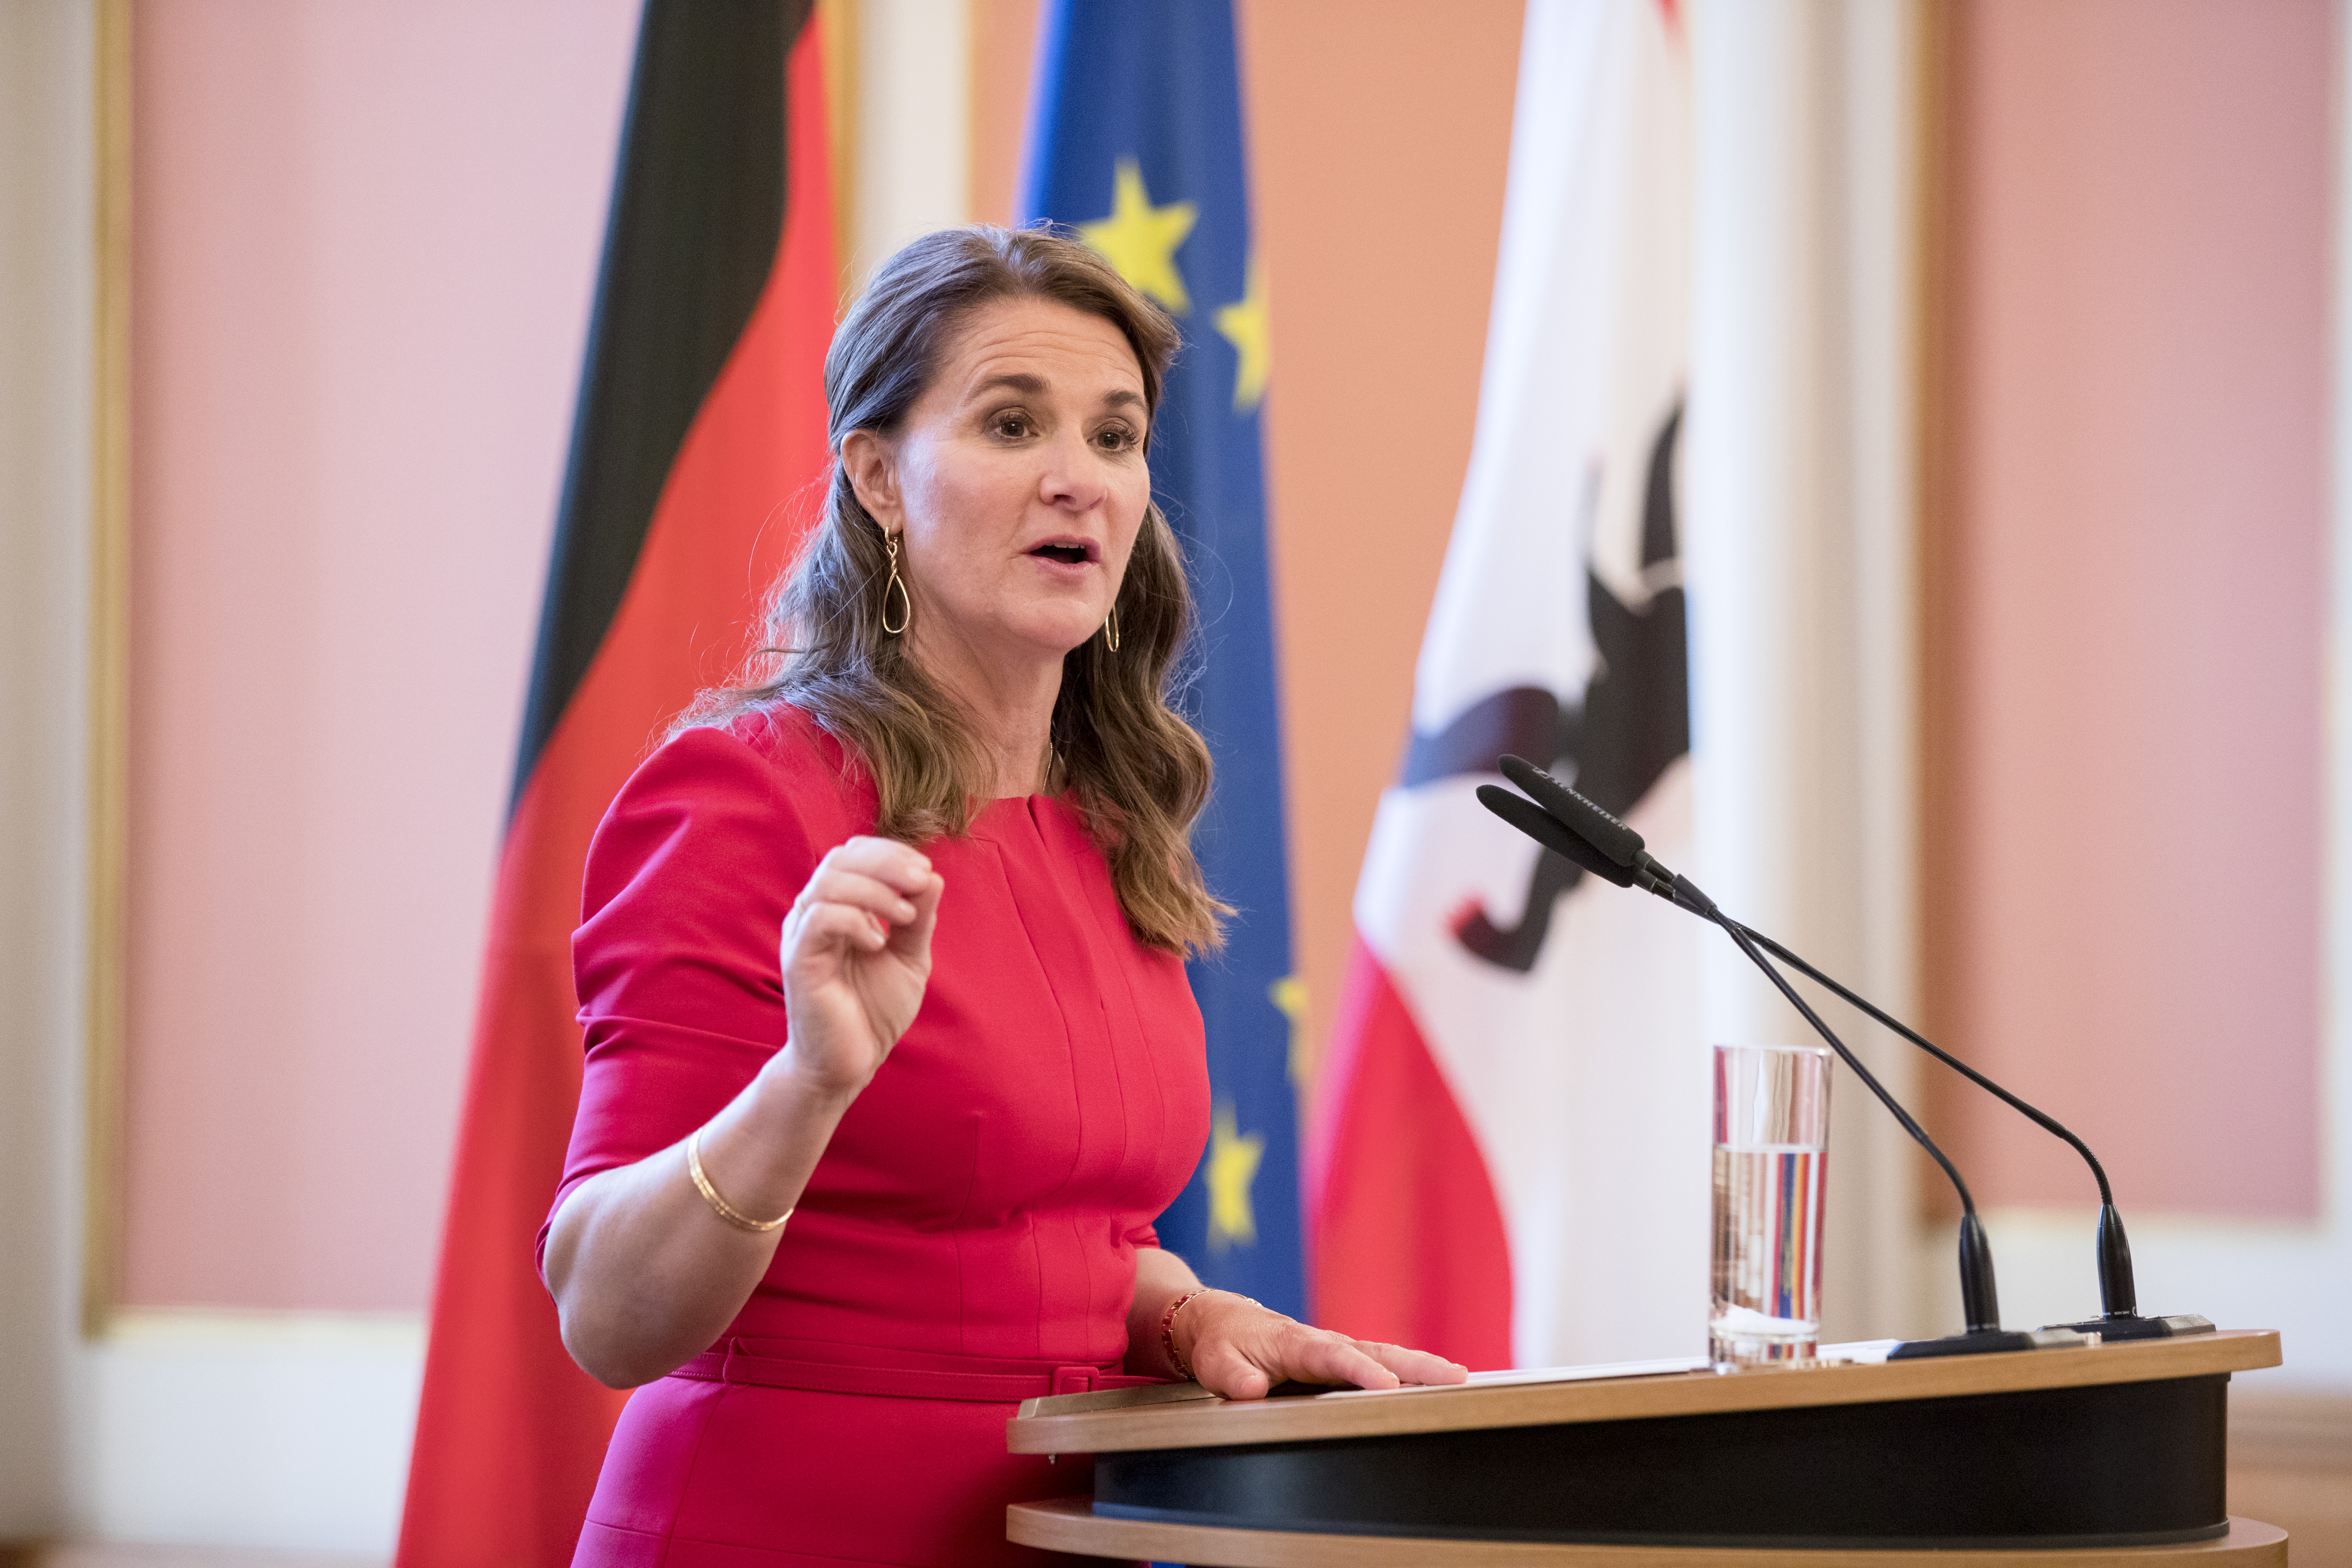 Melinda Gates speaks after being awarded with the Otto-Hahn Peace Medal at the town hall in Berlin, Germany on May 25, 2017